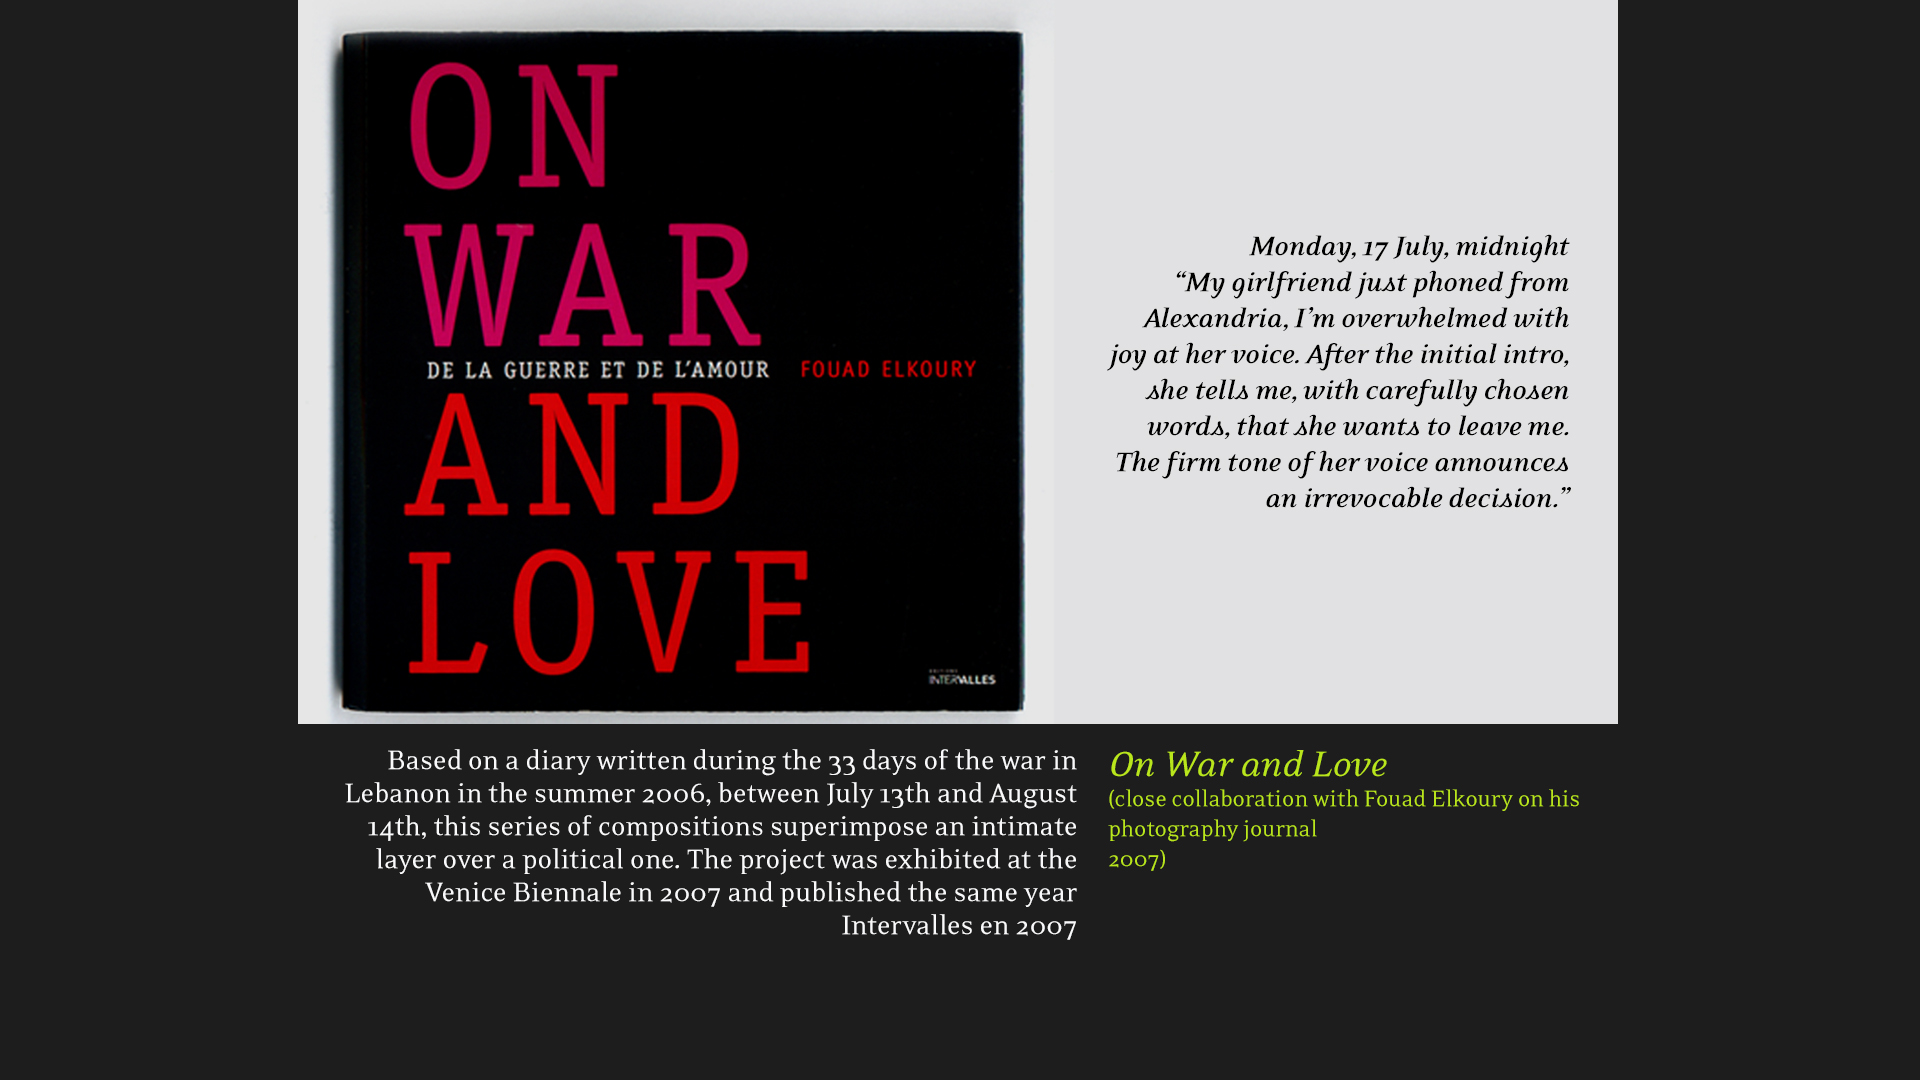 651_On War and Love_EN